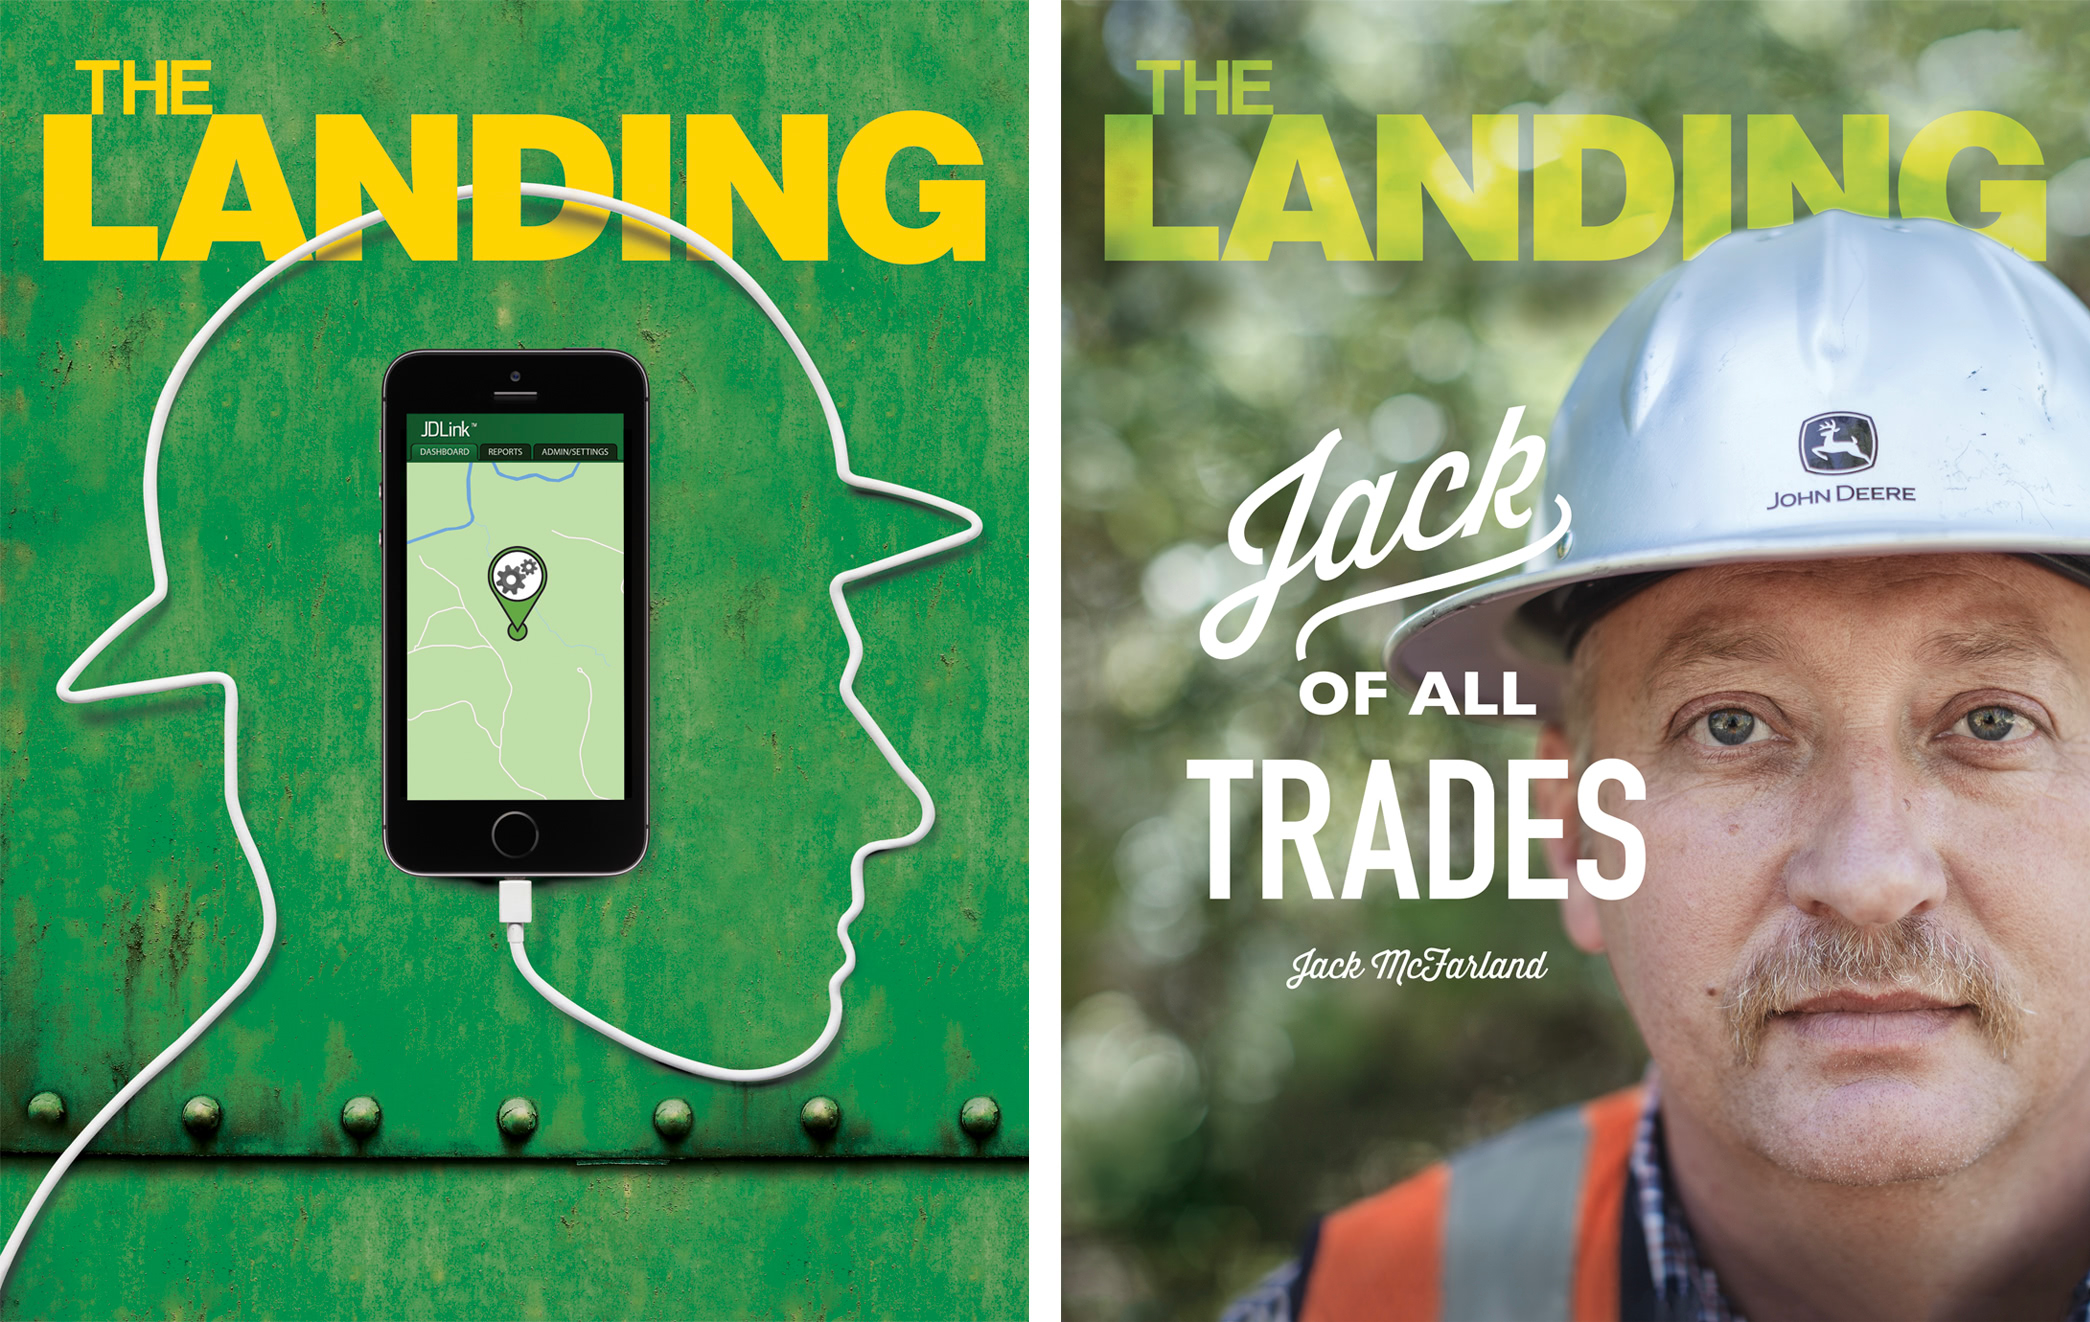 Past covers of The Landing magazine